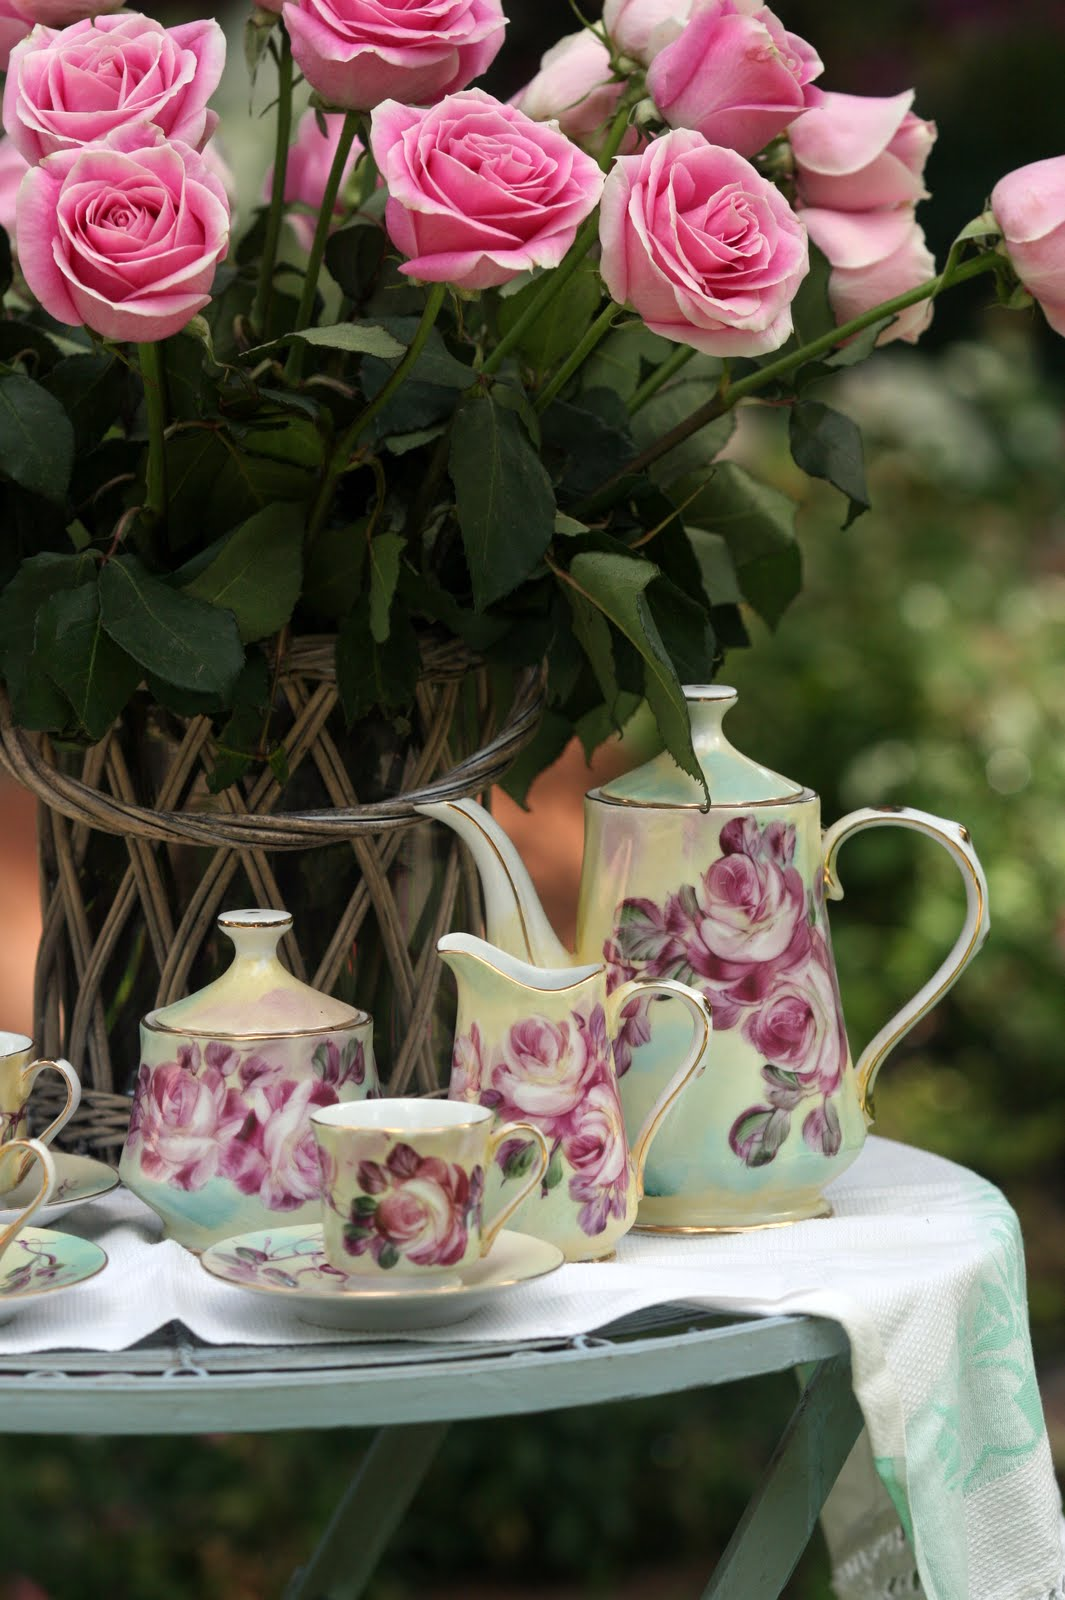 Roses In Garden: Rose Garden Tea And A GIVEAWAY